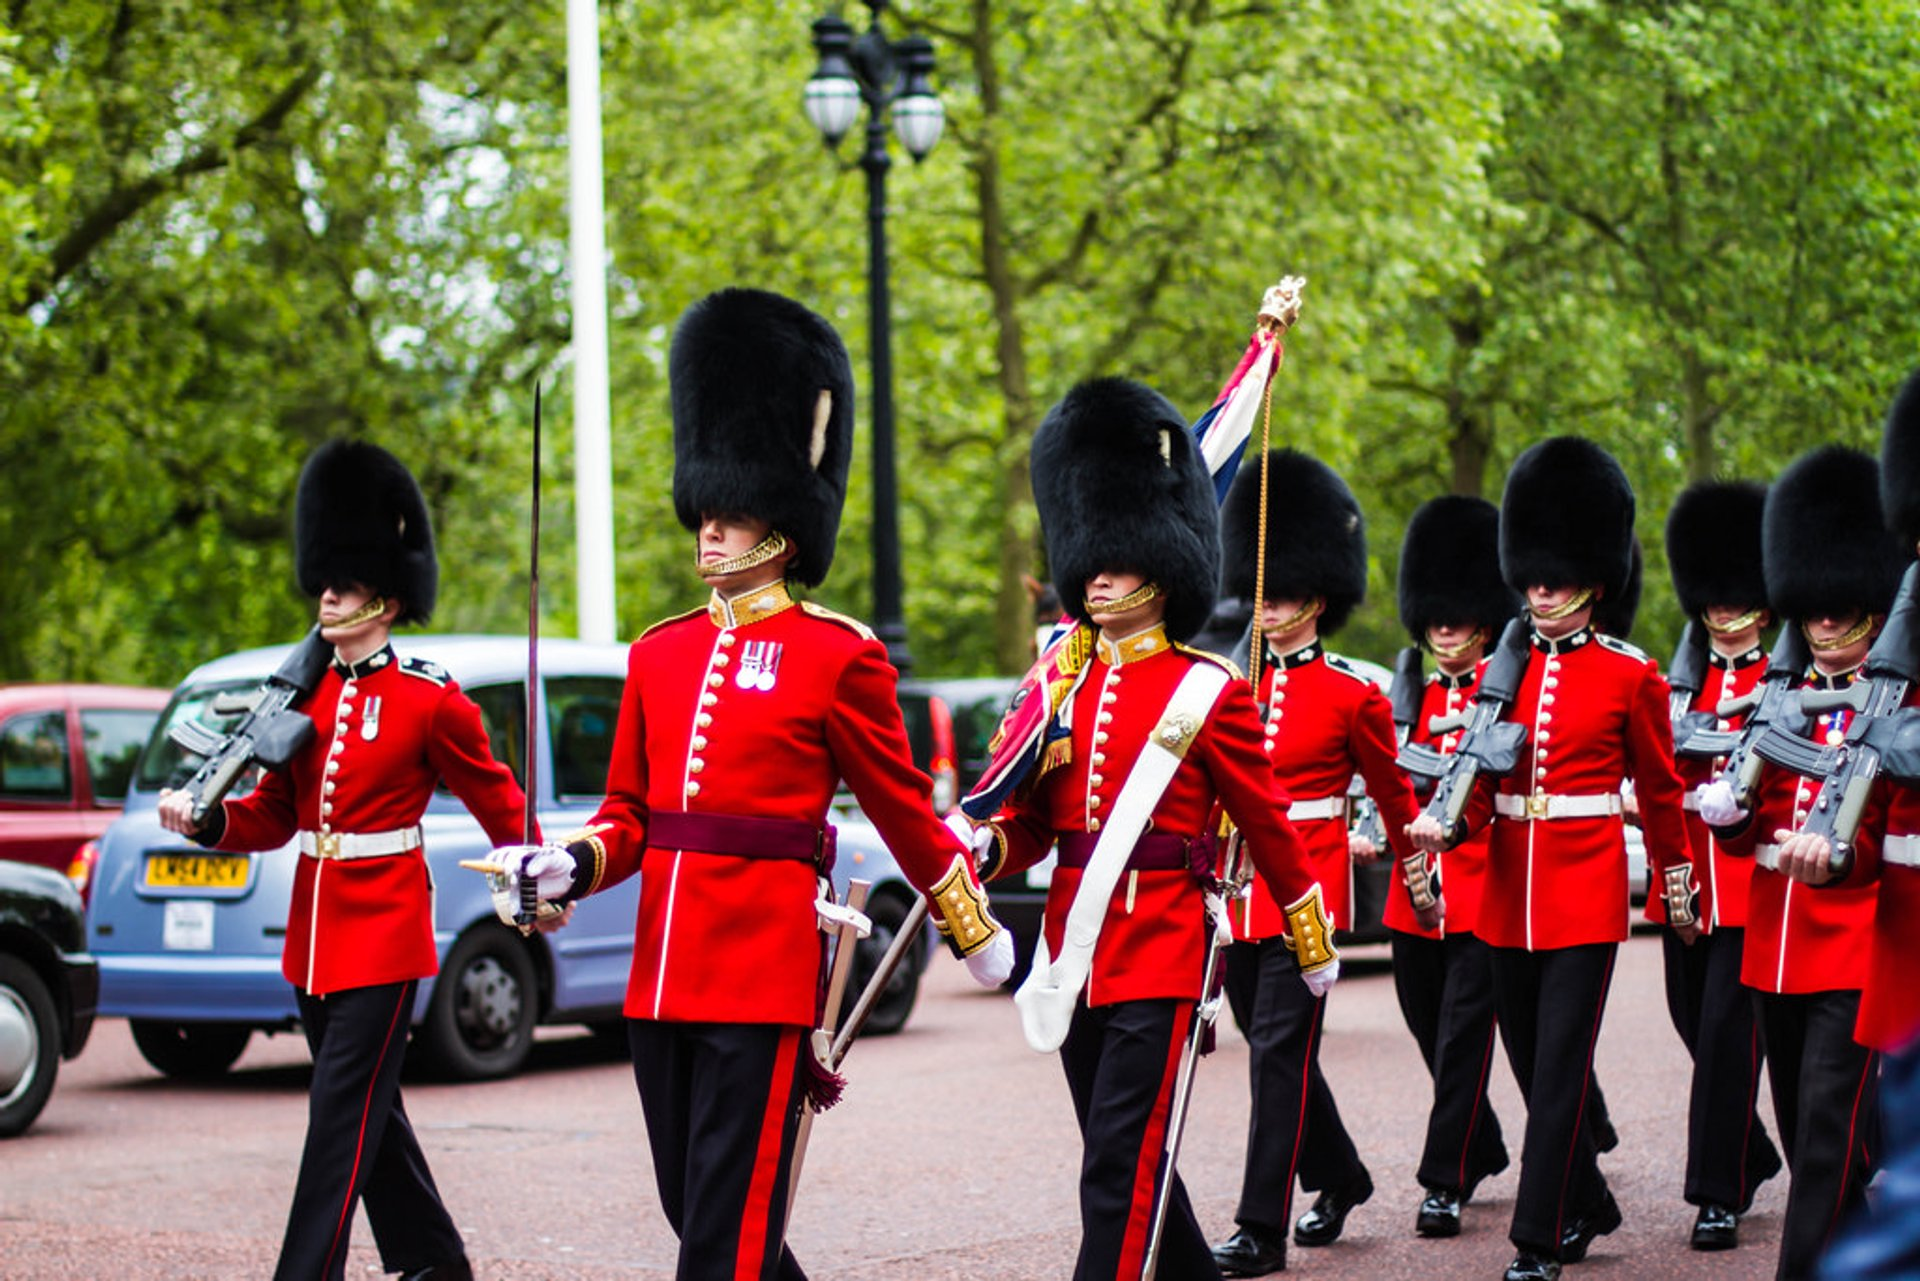 Changing of the Guard in London - Best Season 2020